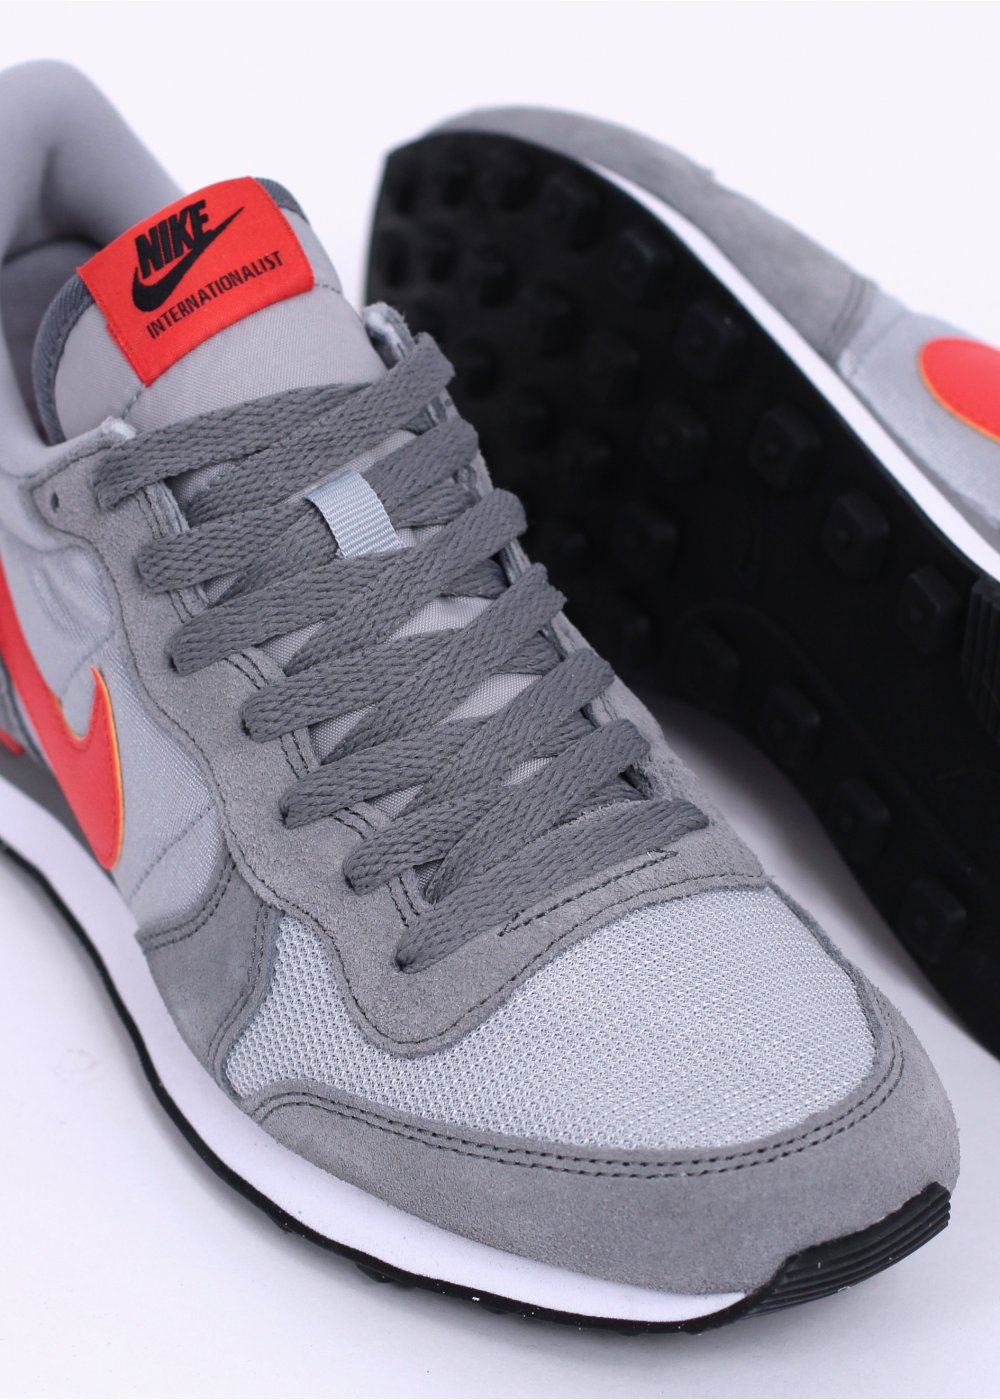 new style b68b0 ded71 get nike internationalist 5bcfd fa4f9  inexpensive nike internationalist ii  sold 2fd81 b224e